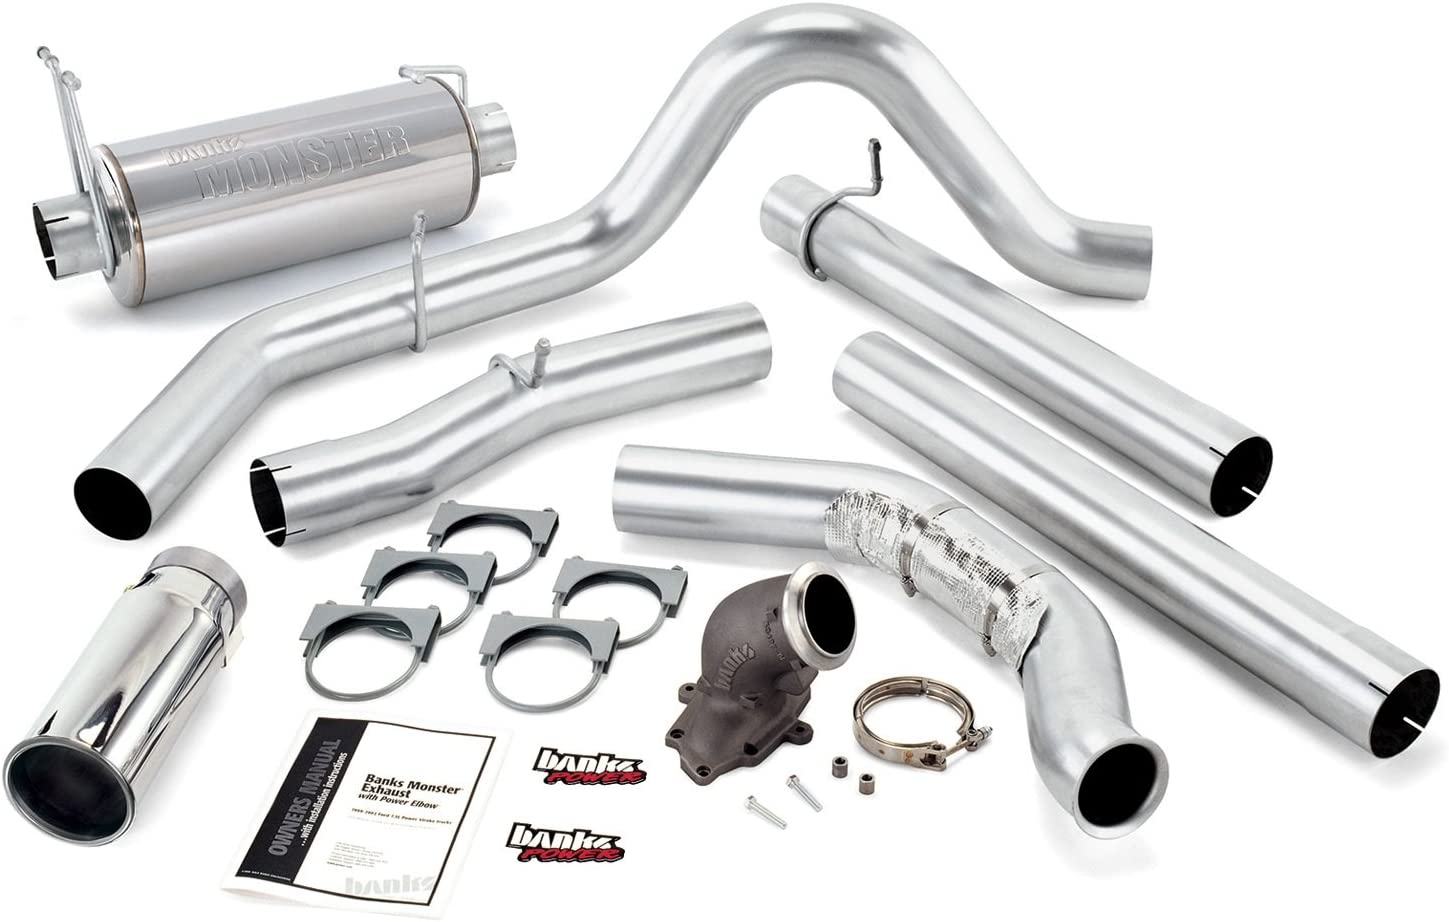 Banks 48659 Exhaust System